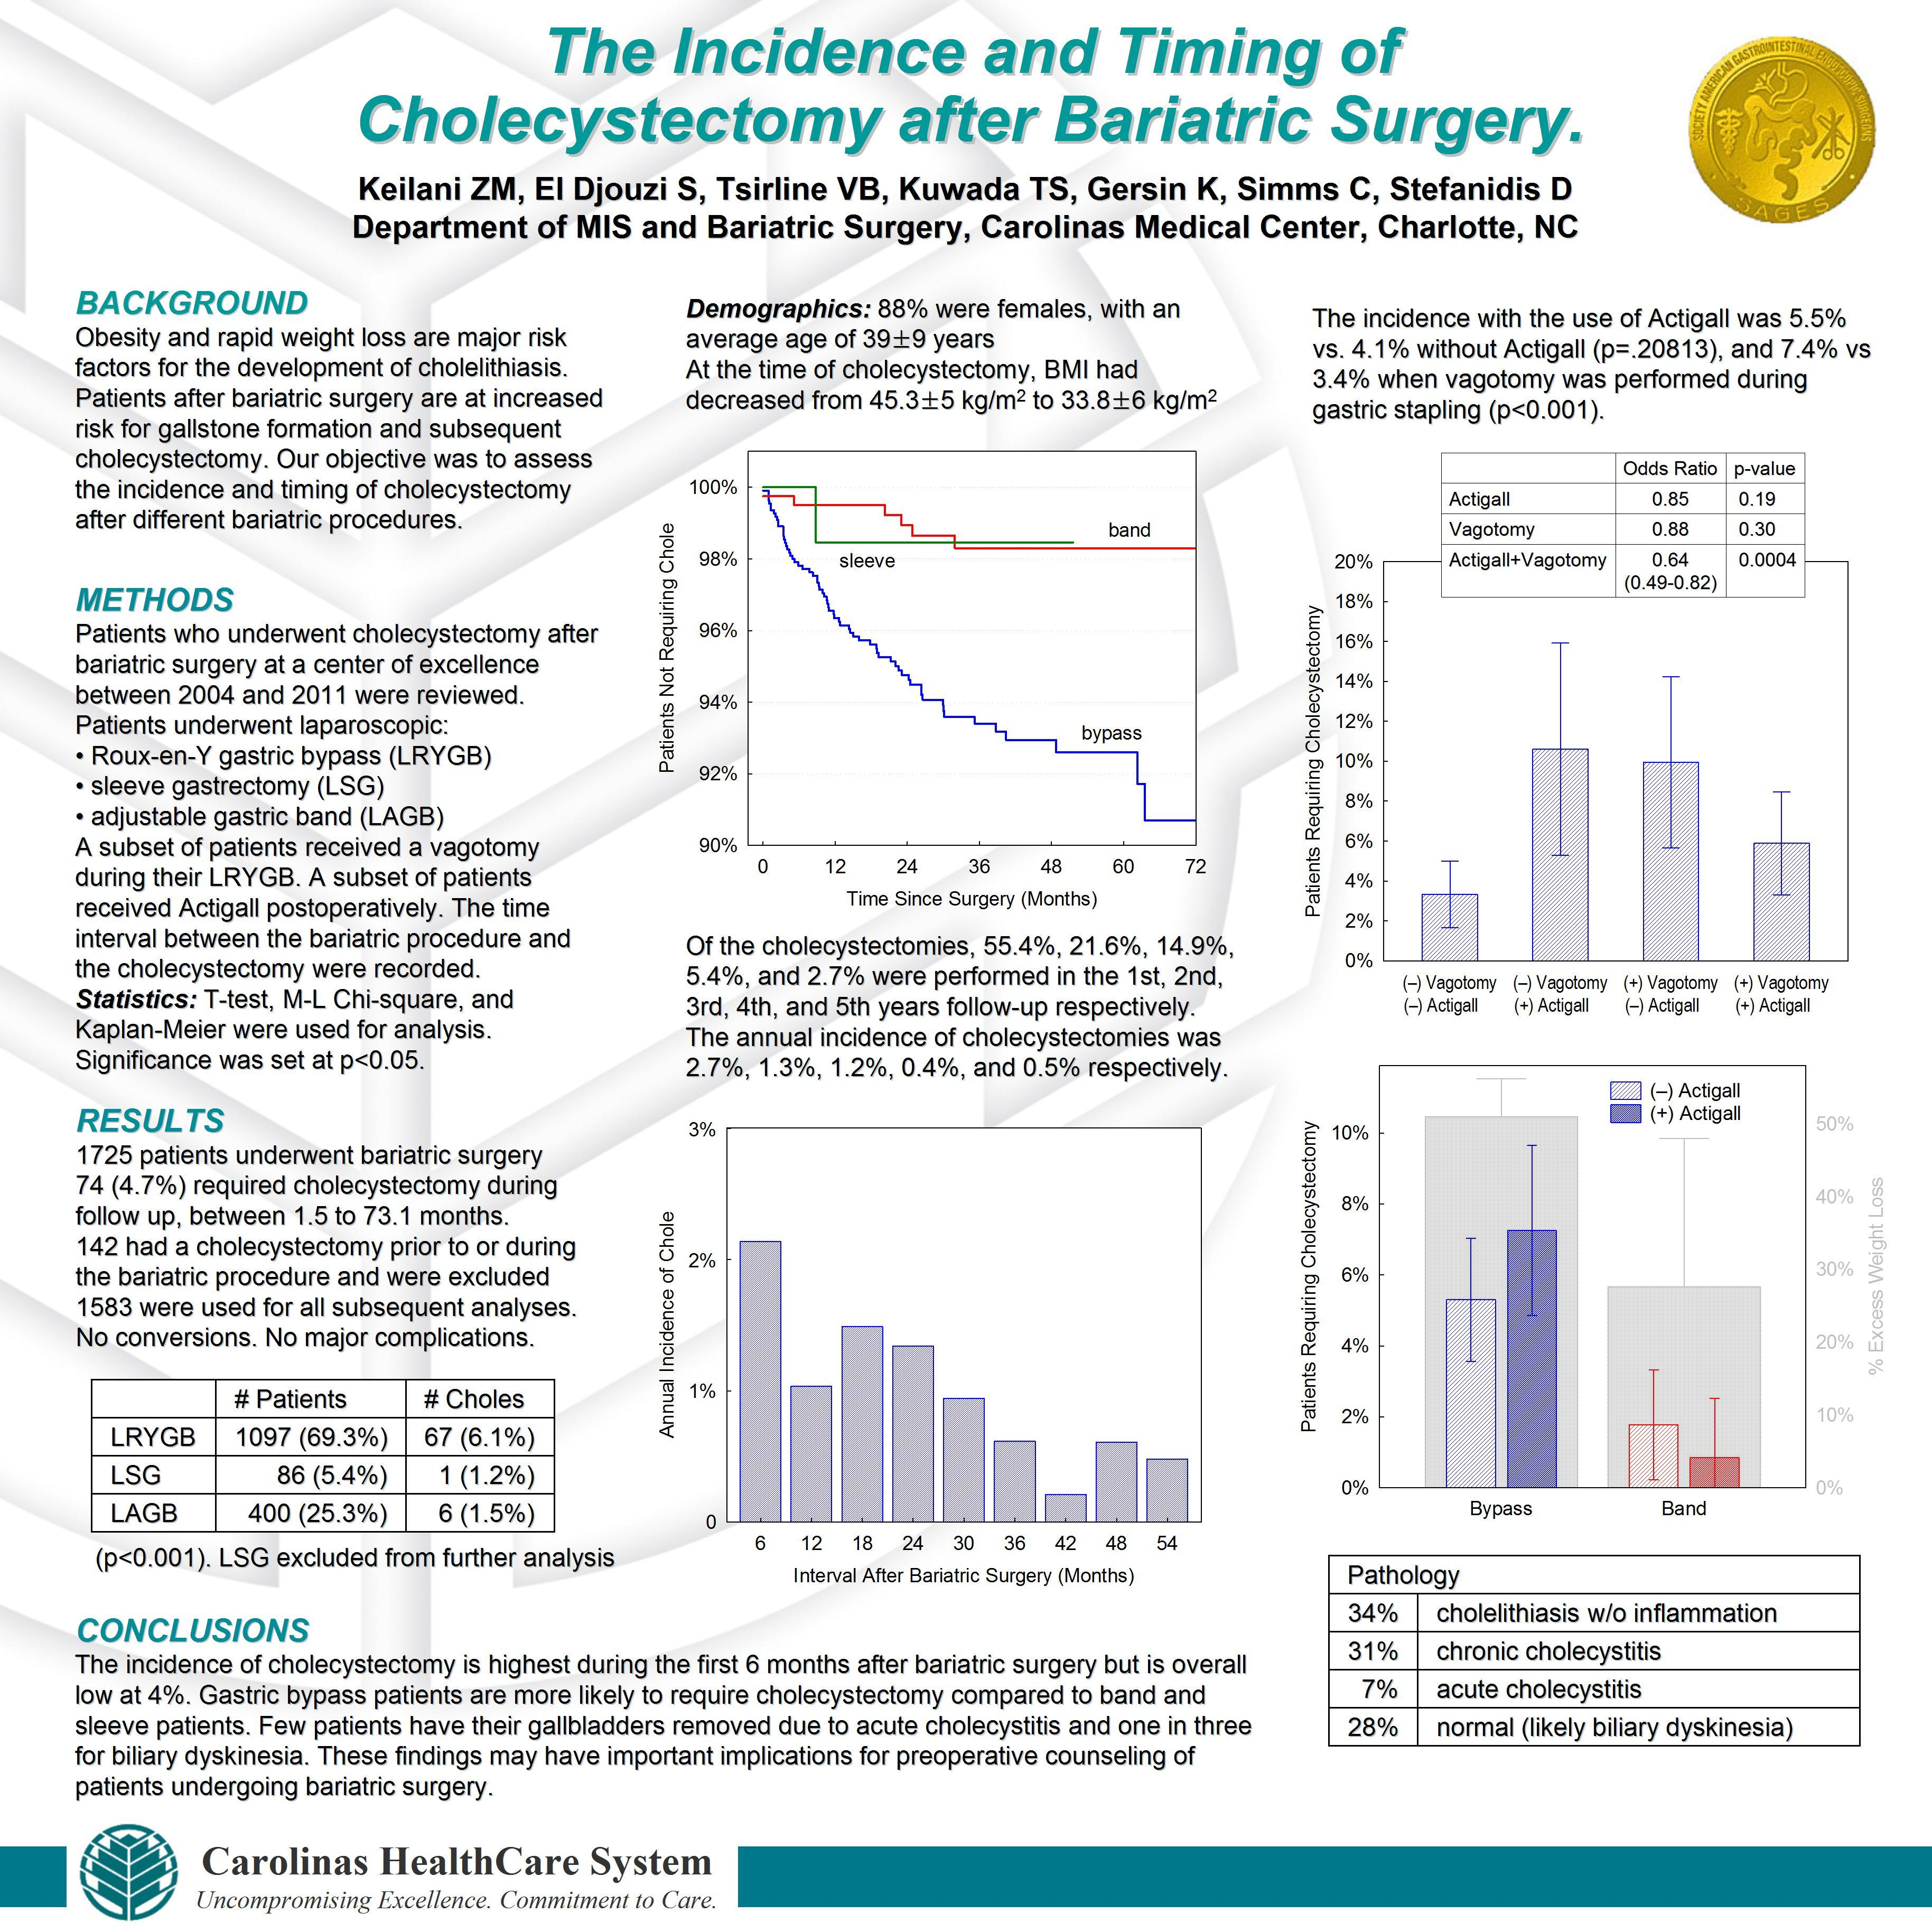 What Are The Incidence And Timing Of Cholecystectomy After Bariatric